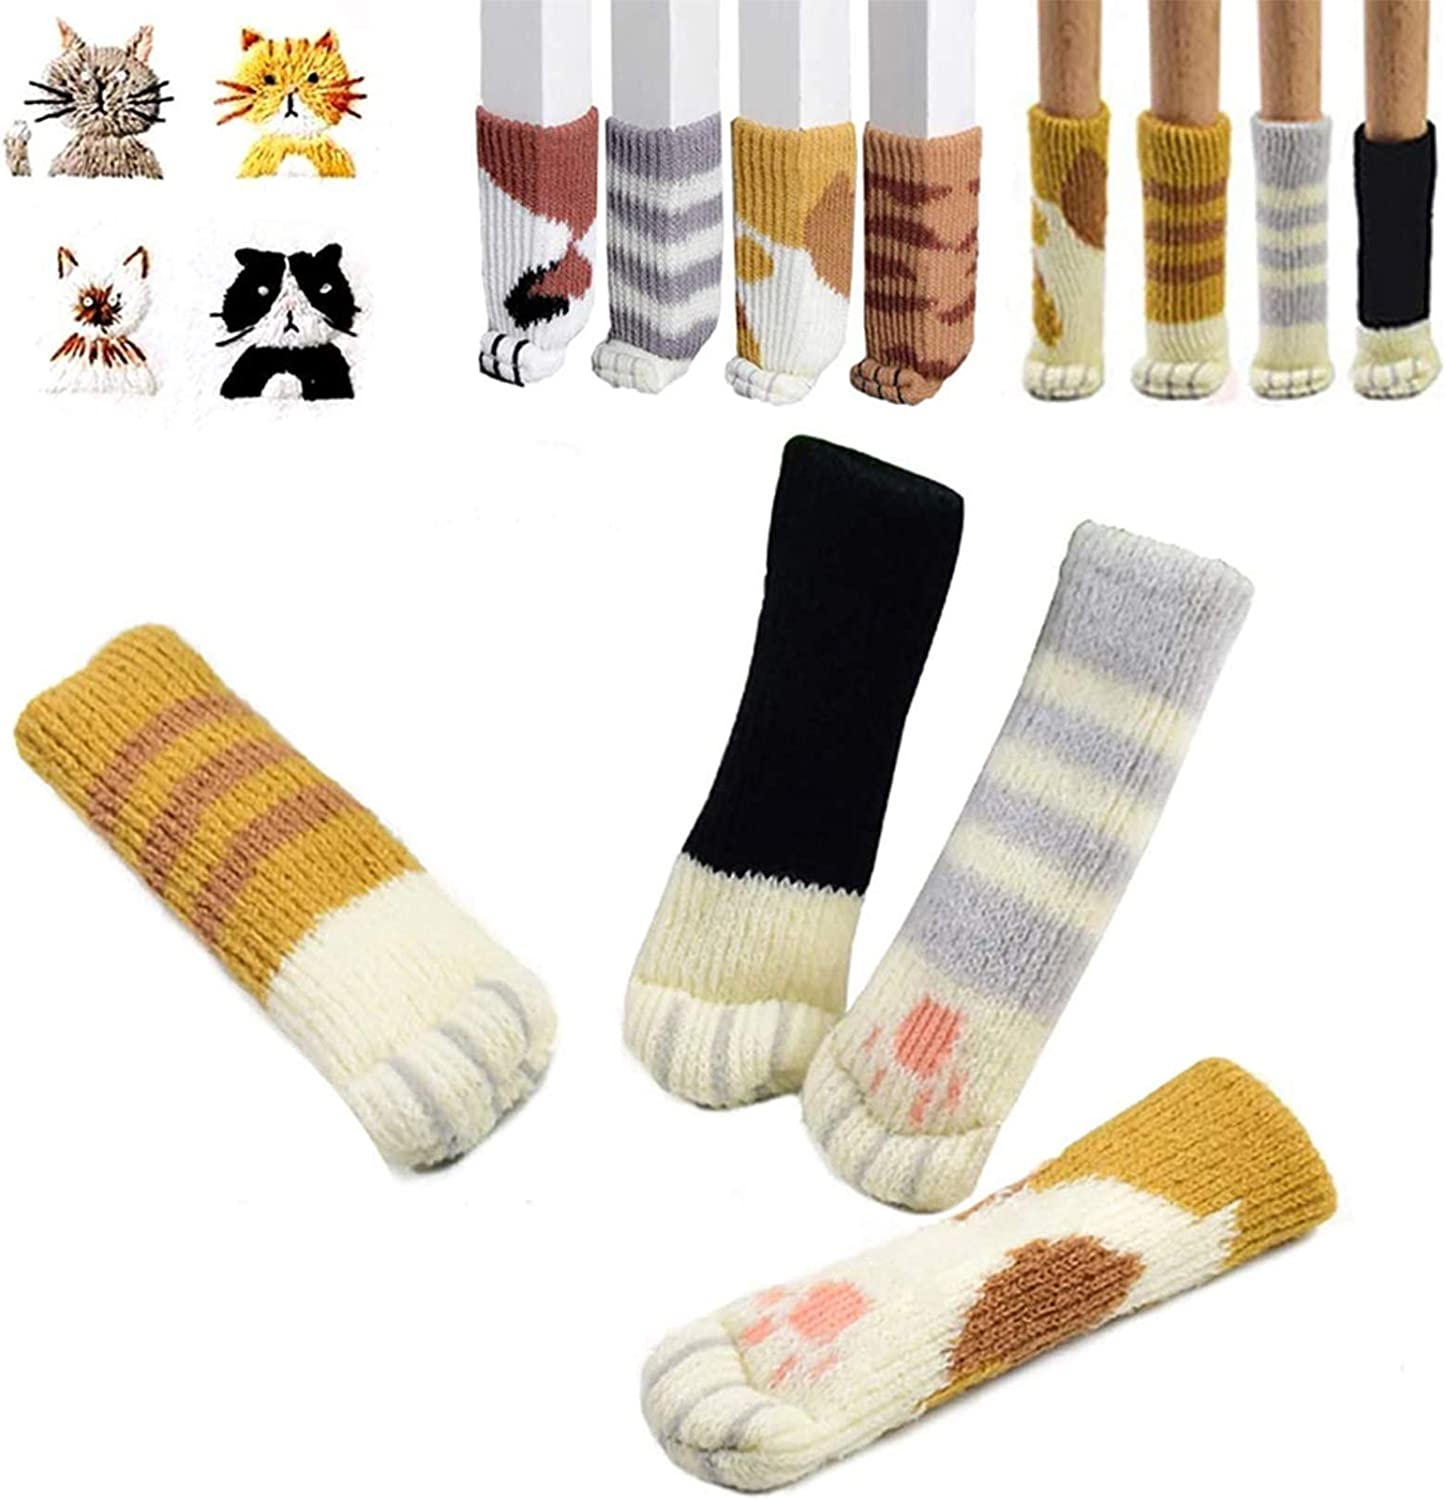 Huinsh 16PCS (4 Sets) Chair Socks Table Leg Pads with Cute Cat Paws Design, Reliable Furniture and Floor Protector, Reduce Noise & Prevent Hardwood Floor from Scratches,Fit Girth 2.4